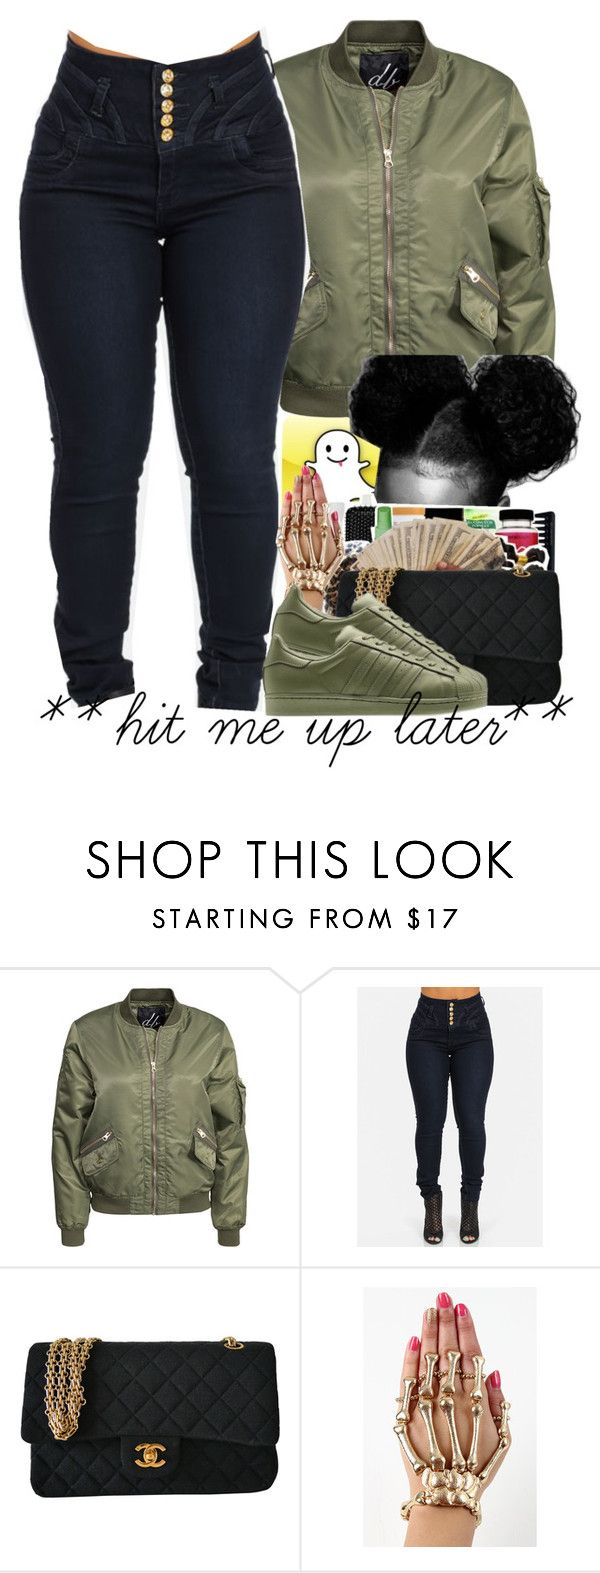 """DROP Y'ALL SNAPCHAT NAMES"" by independentbxtchesonly ❤ liked on Polyvore featuring D. Brand, Chanel and adidas Originals"